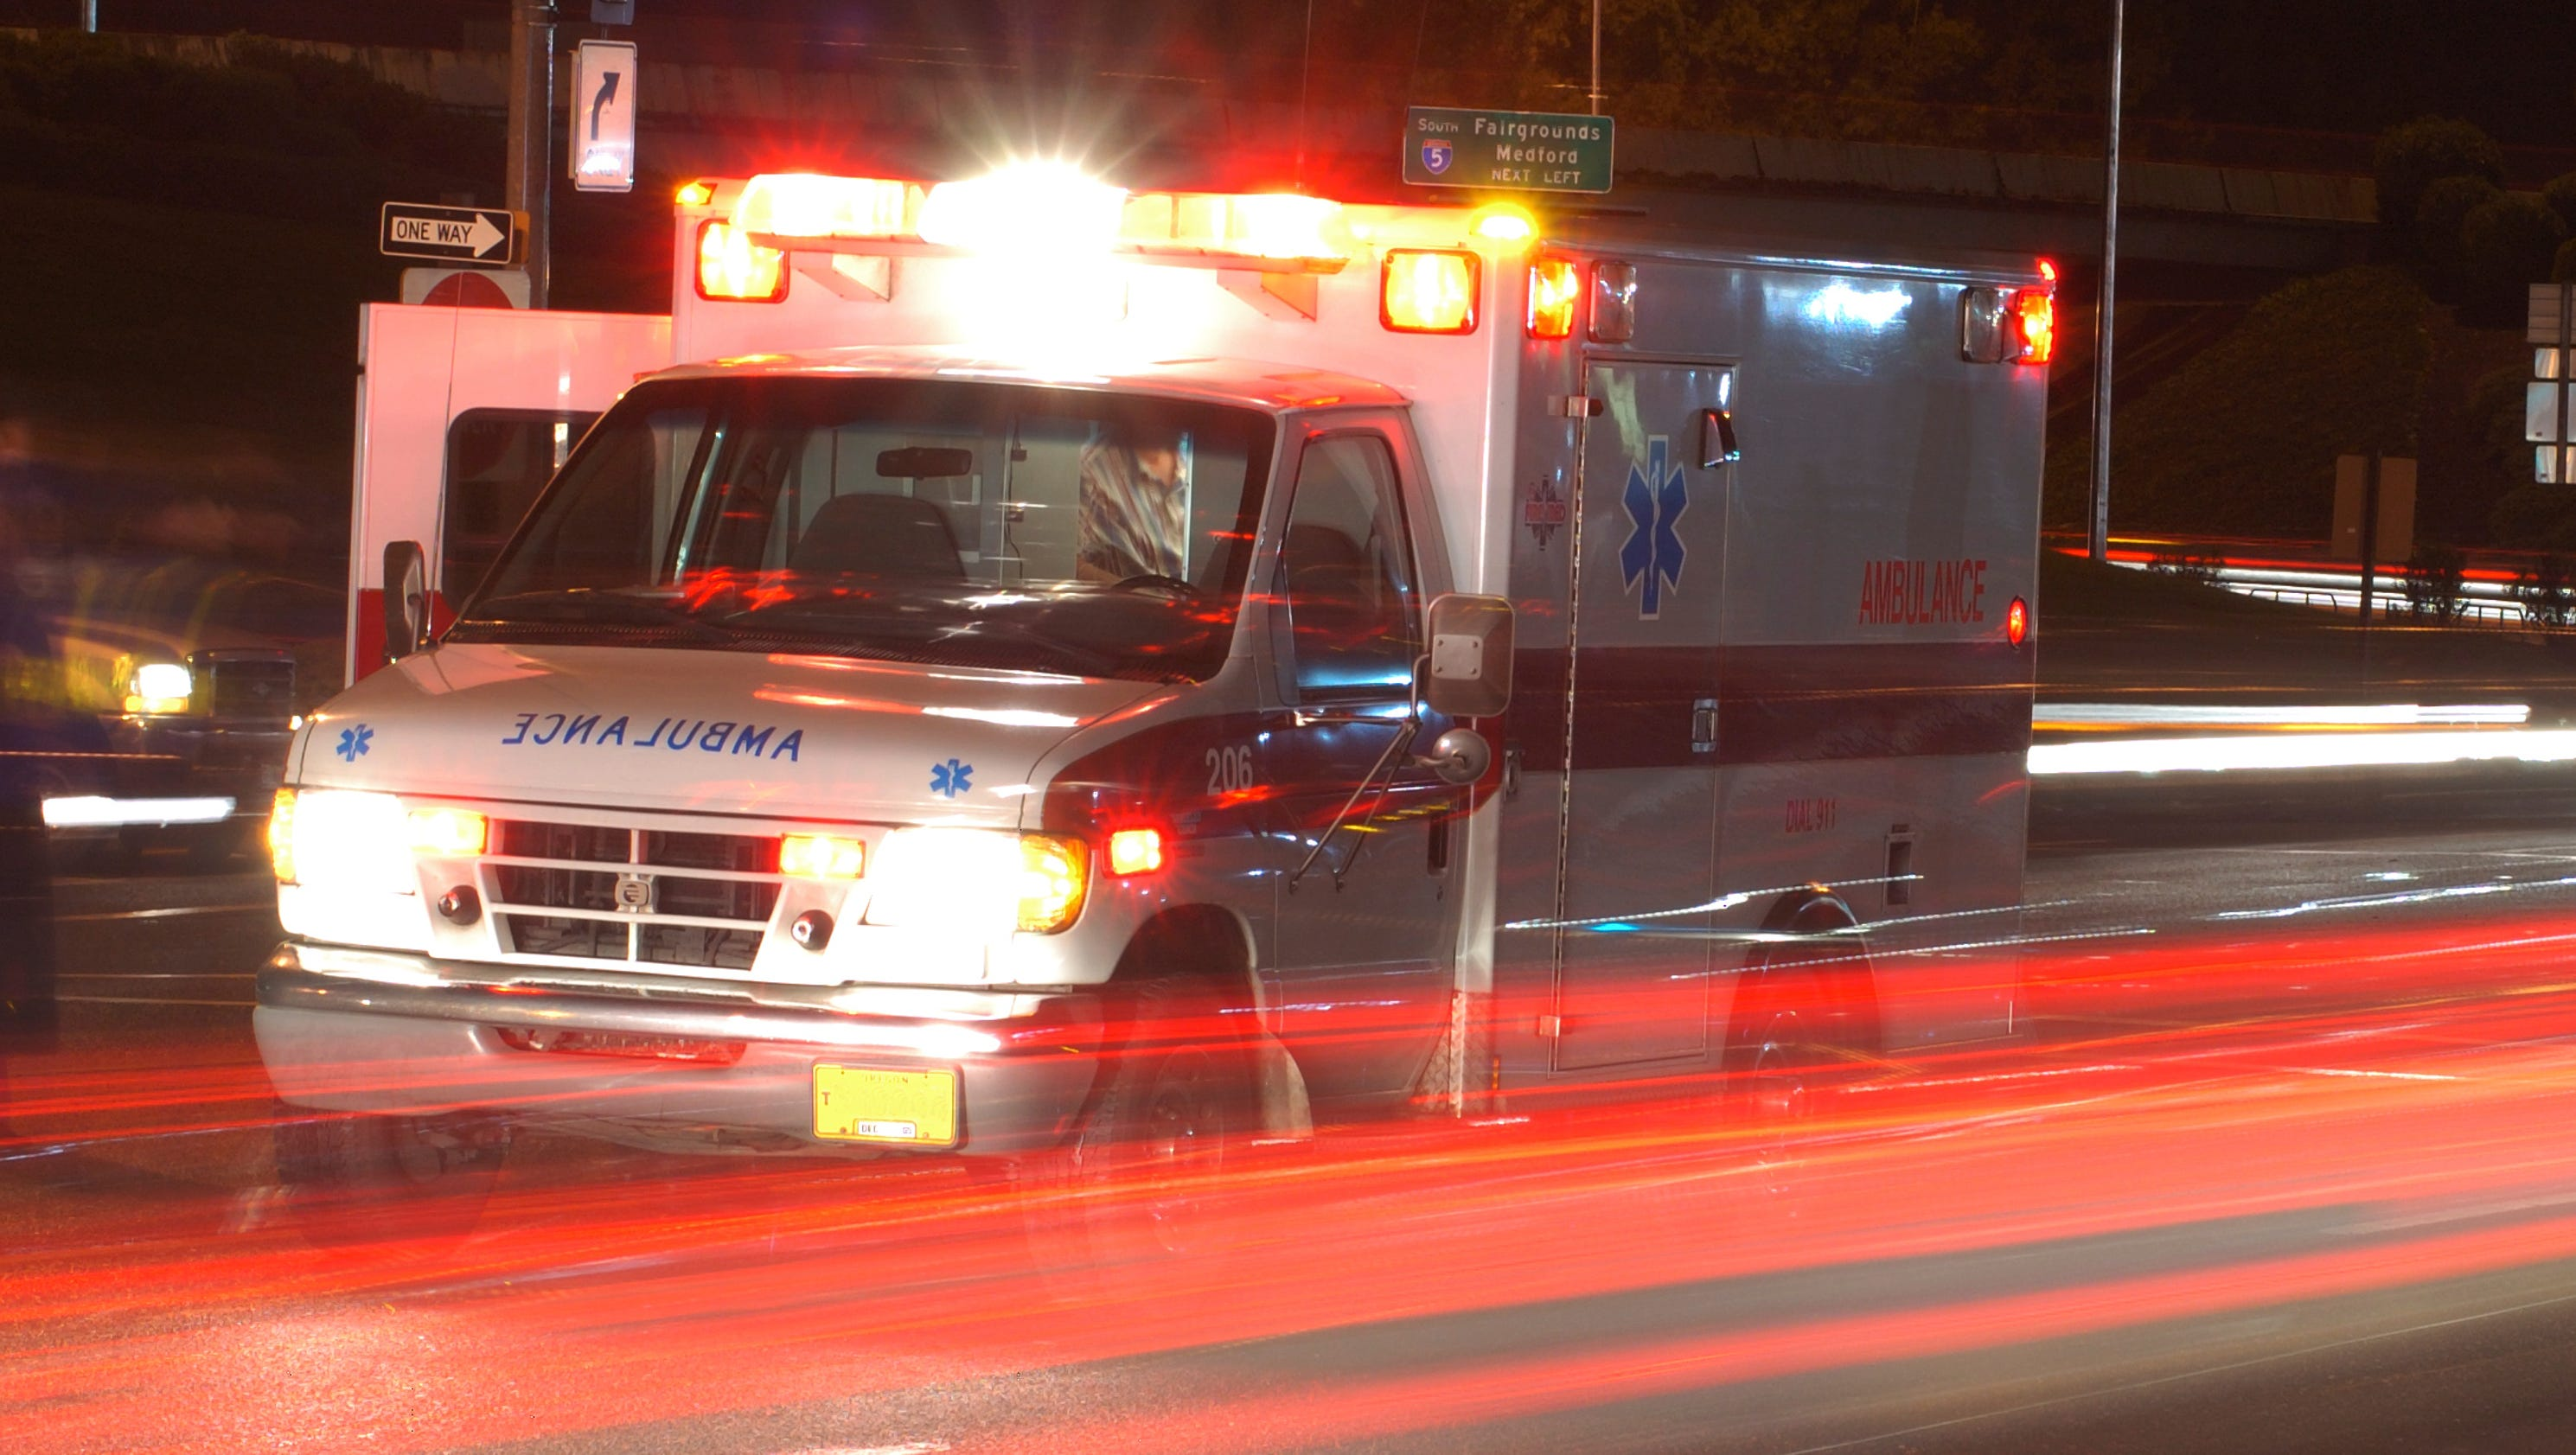 Woman struck killed by vehicles in pemberton twp sciox Choice Image